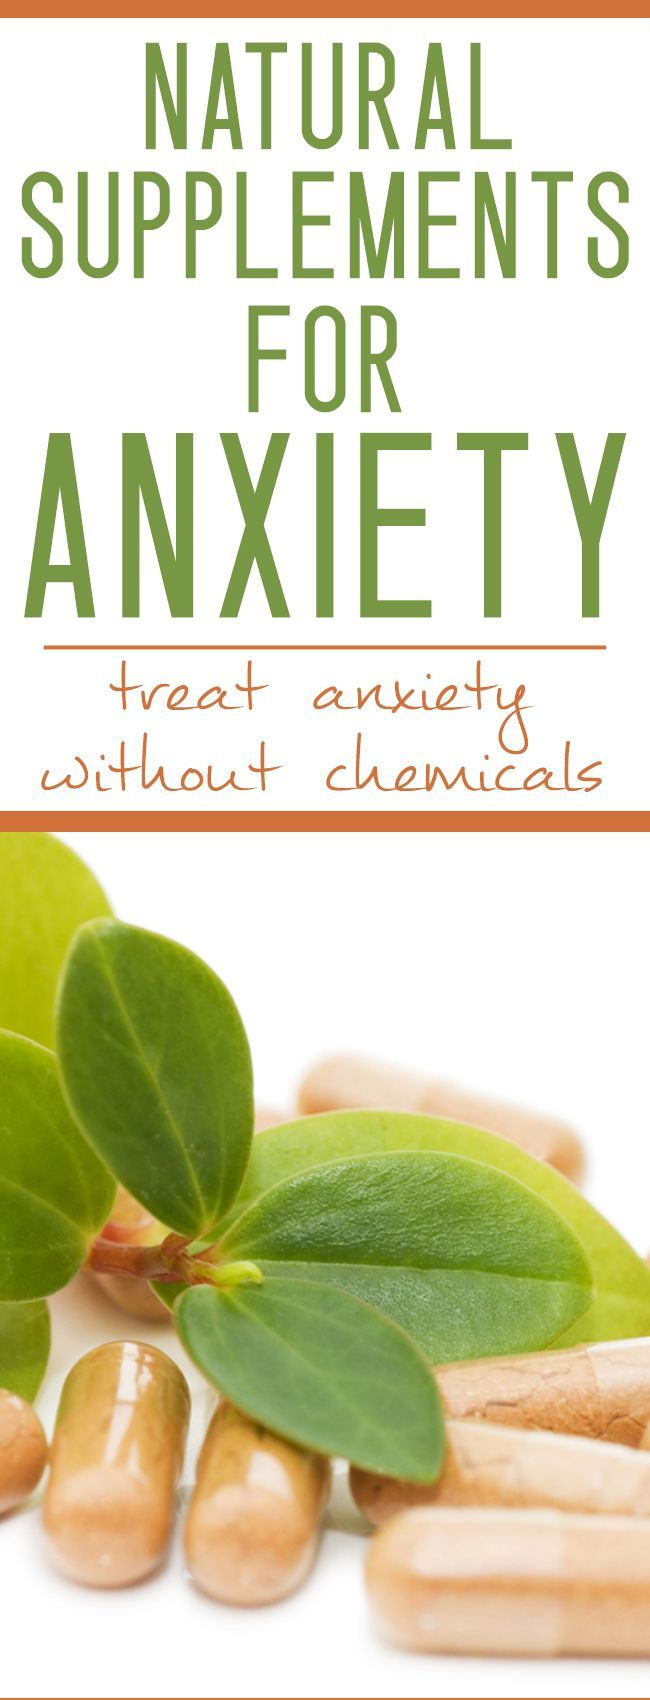 Suffering with ANXIETY? Have you tried natural supplements to treat anxiety? Works for me!